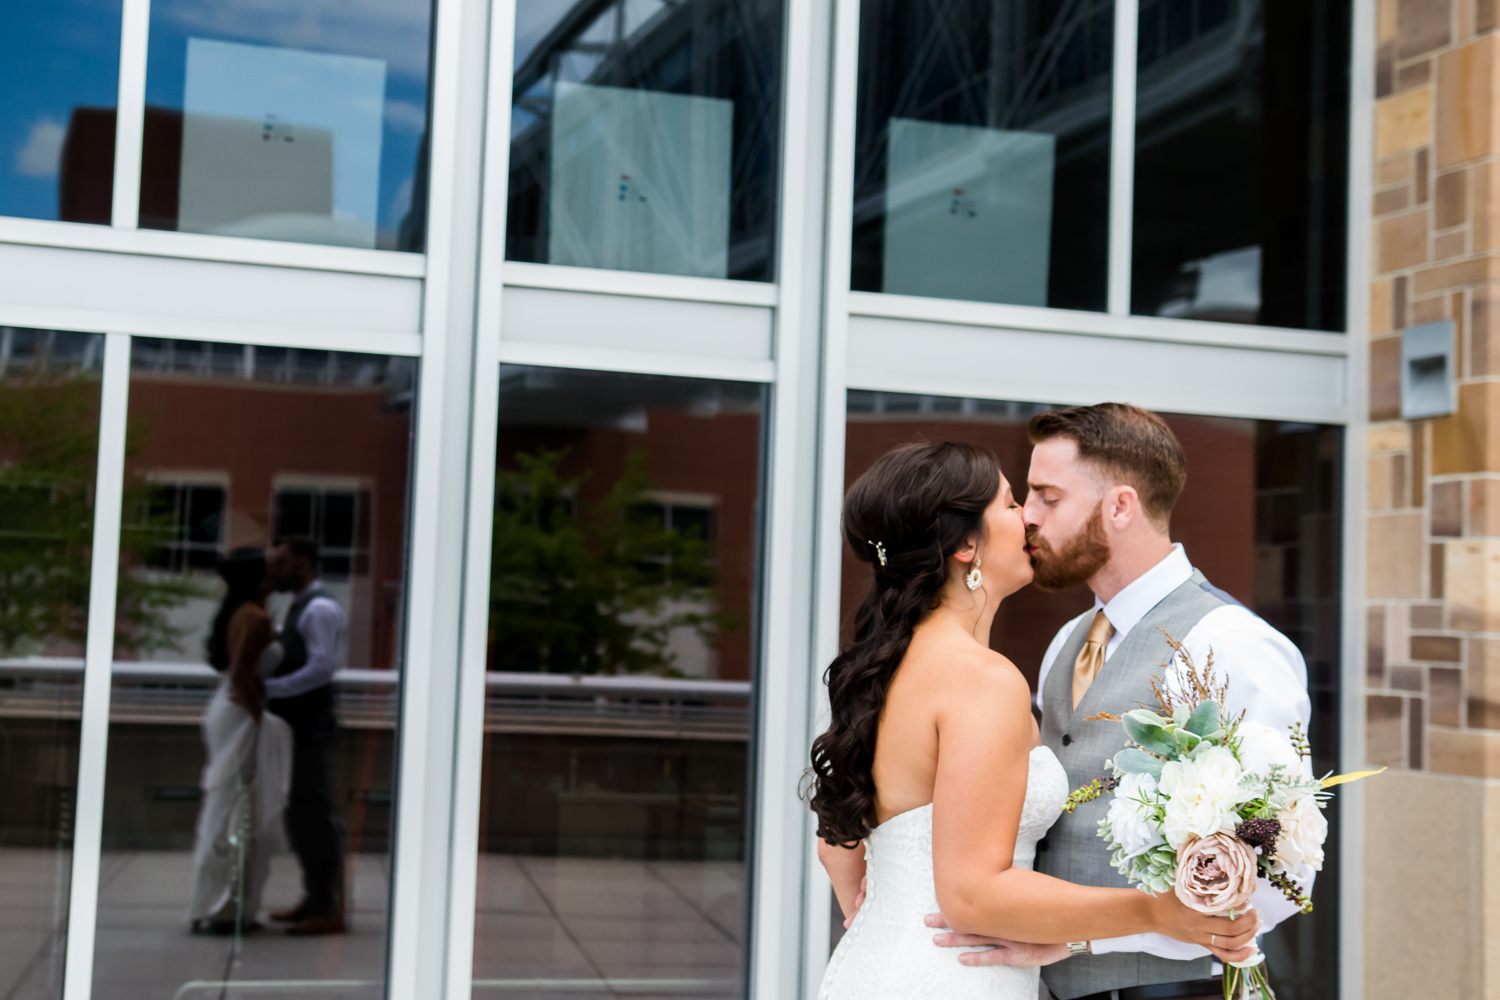 Indiana State Museaum Wedding Photography 12385.JPG